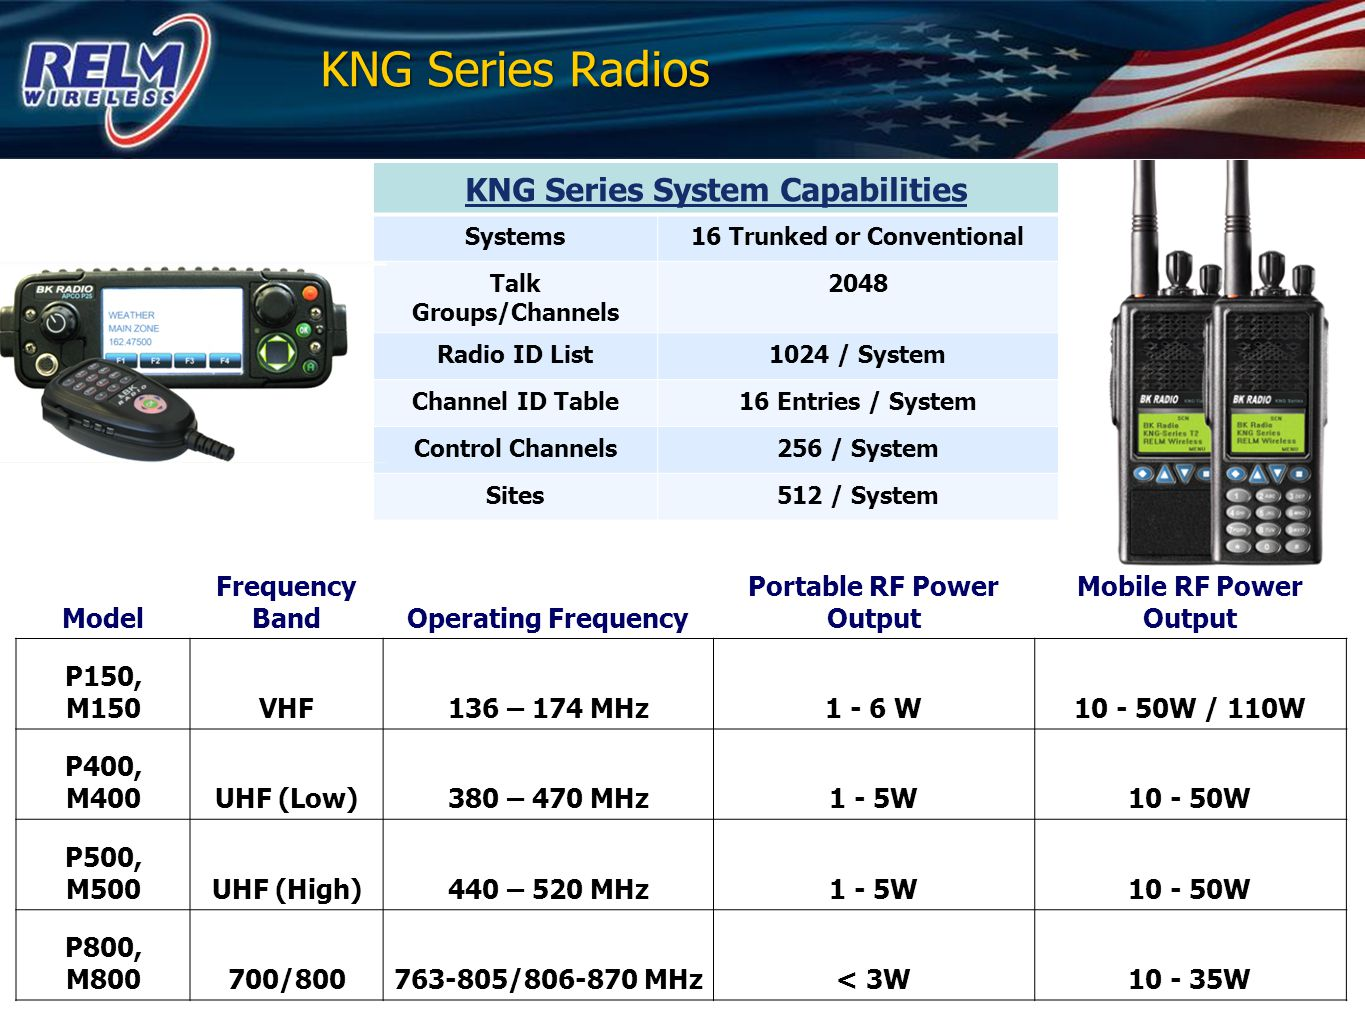 KNG Series Radios KNG Series System Capabilities Model Frequency Band